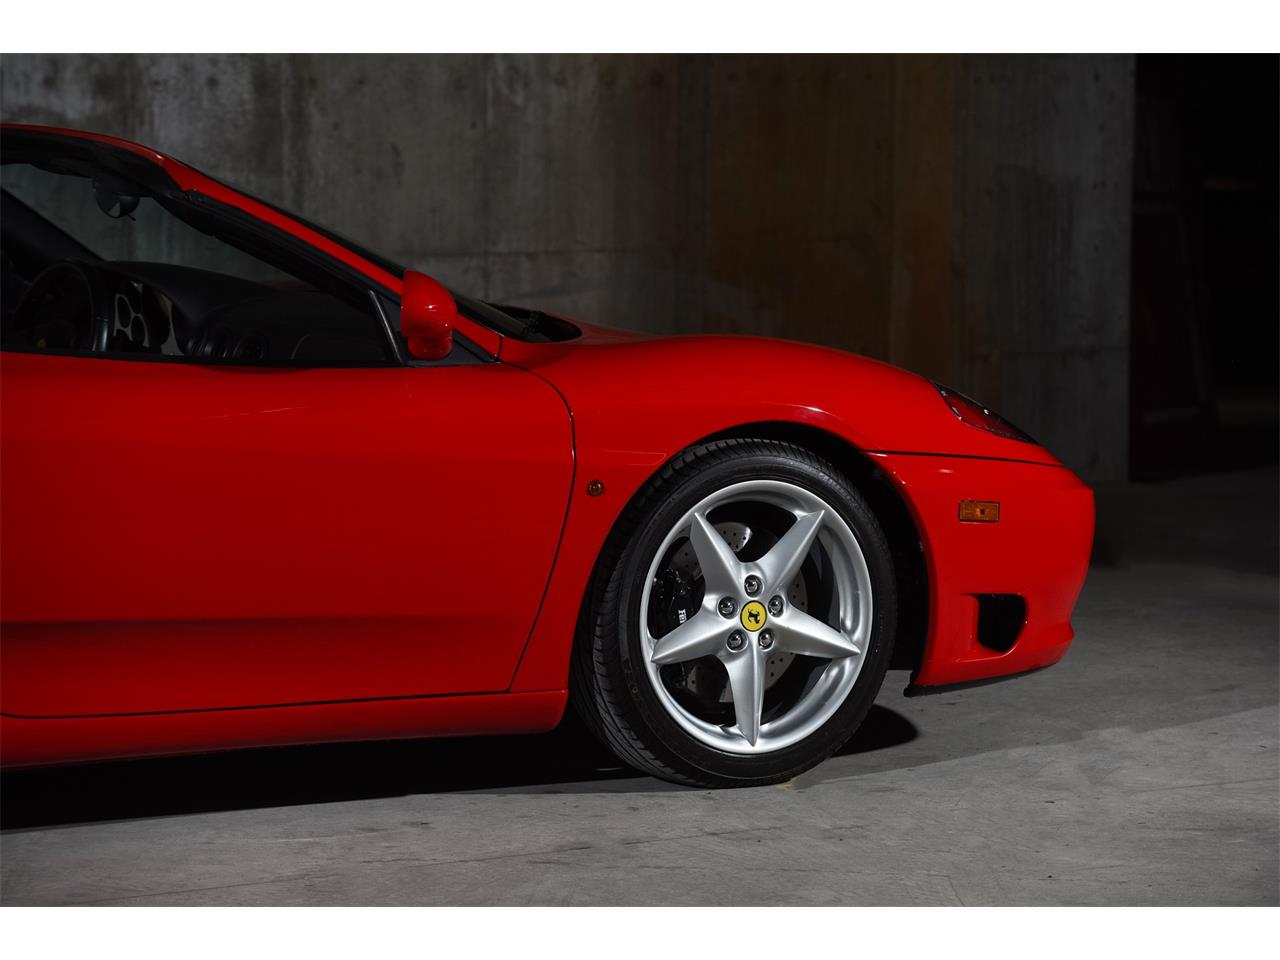 Large Picture of '01 Ferrari 360 located in Valley Stream New York Auction Vehicle Offered by Ryan Friedman Motor Cars  - L0CM